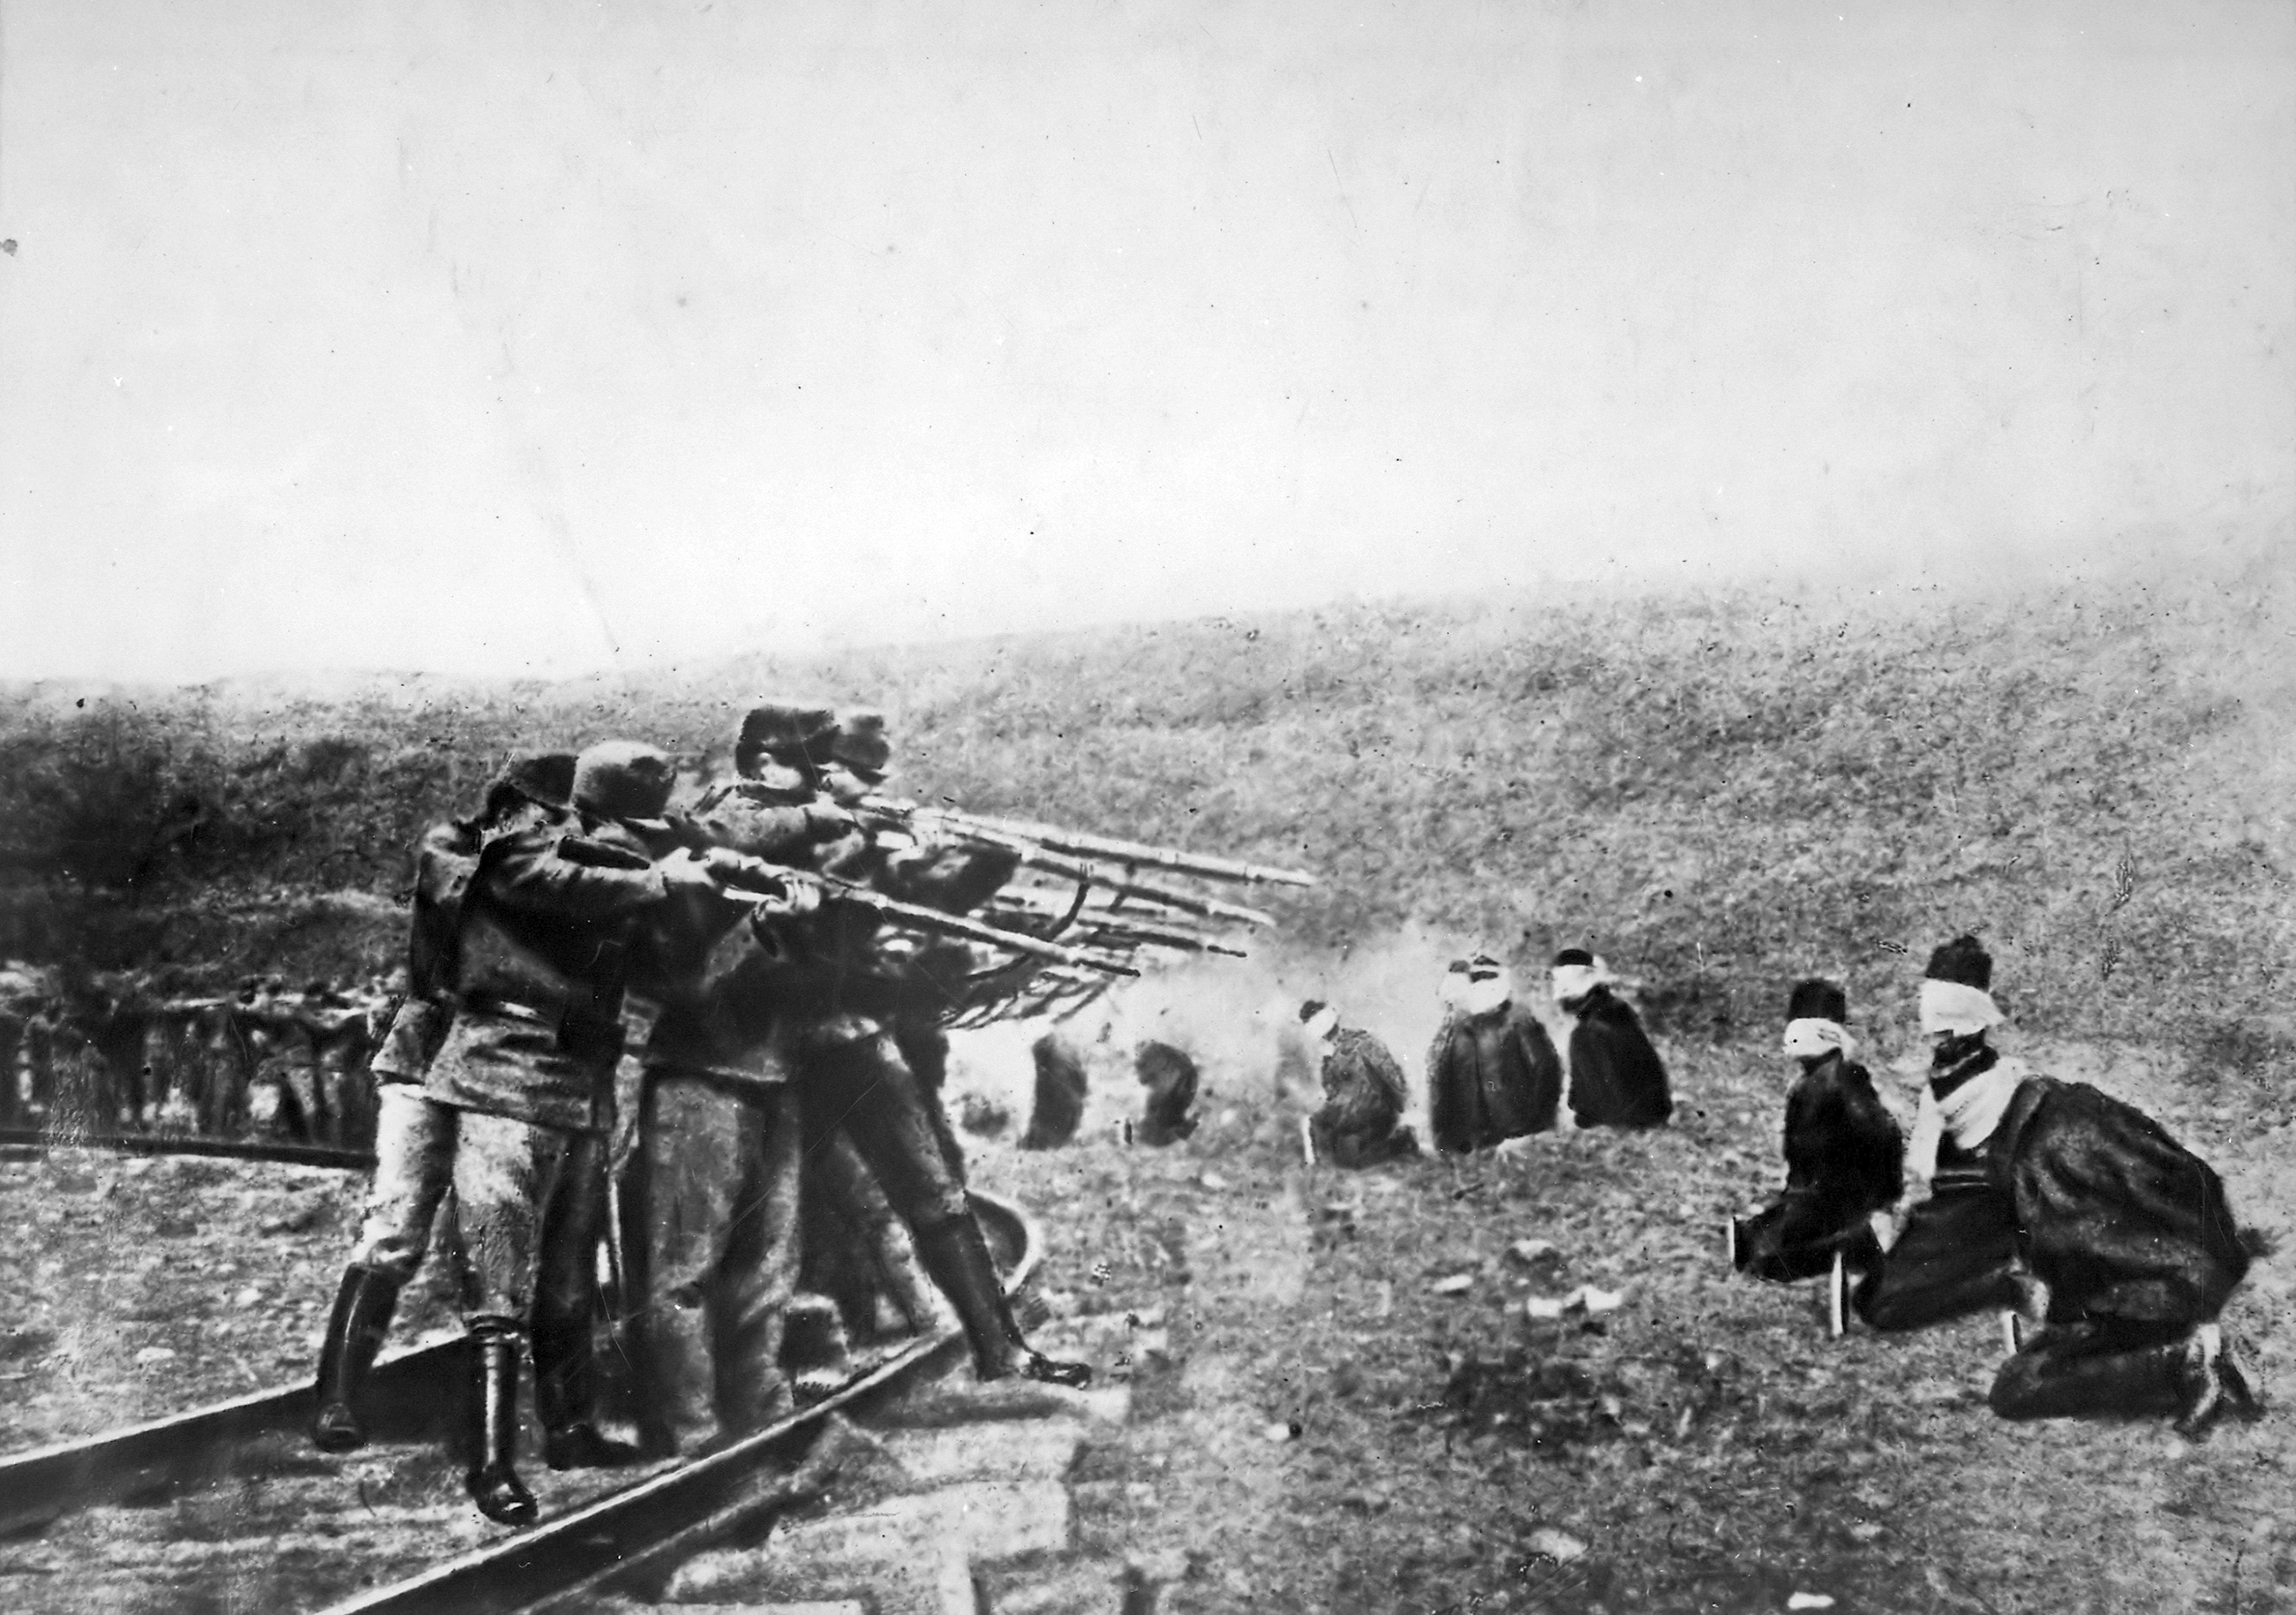 Austrian soldiers executing Serbian POWs in 1917